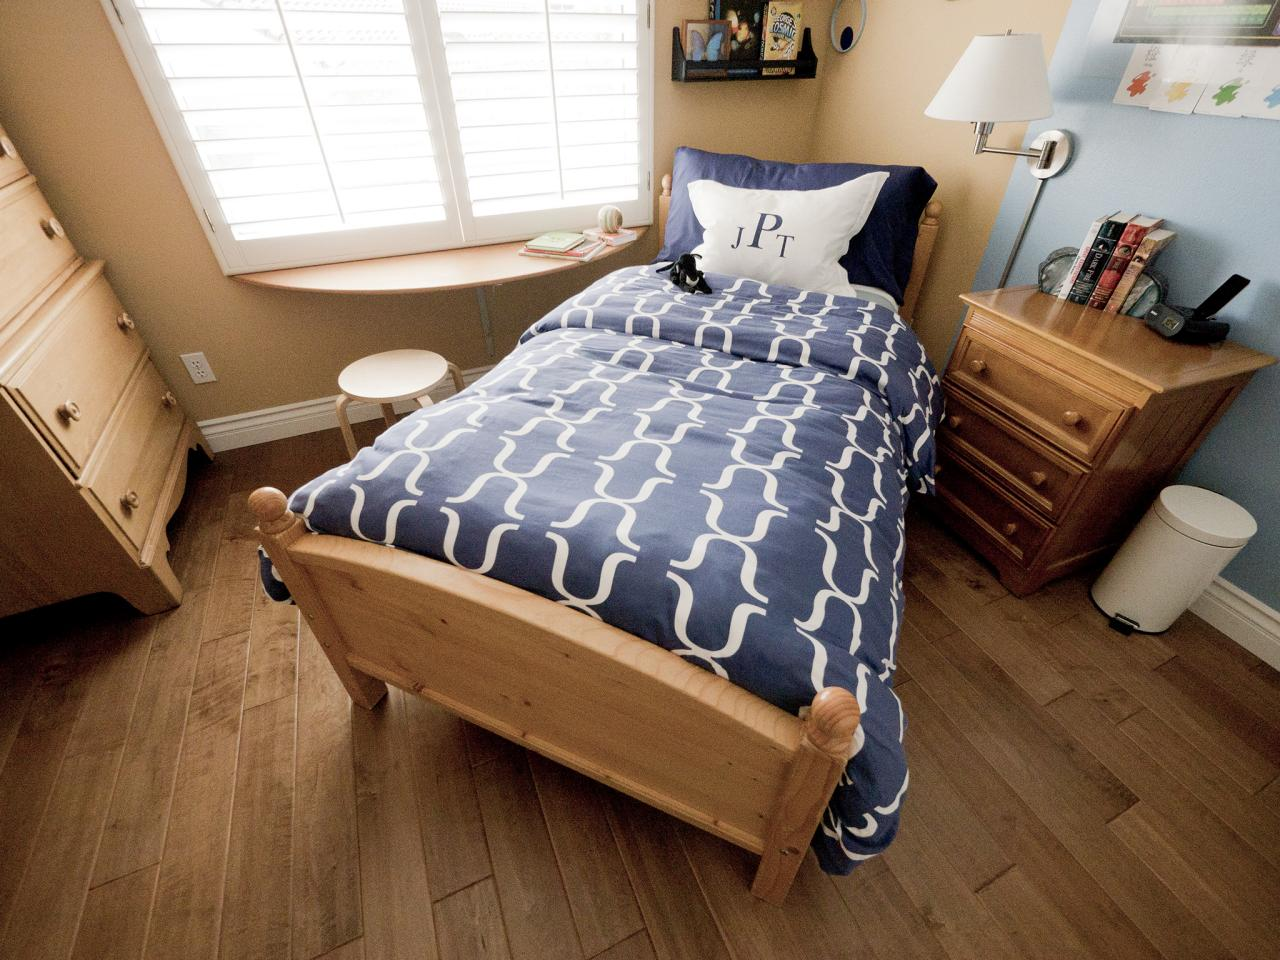 Small boy 39 s room with big storage needs kids room ideas for Big bed small room